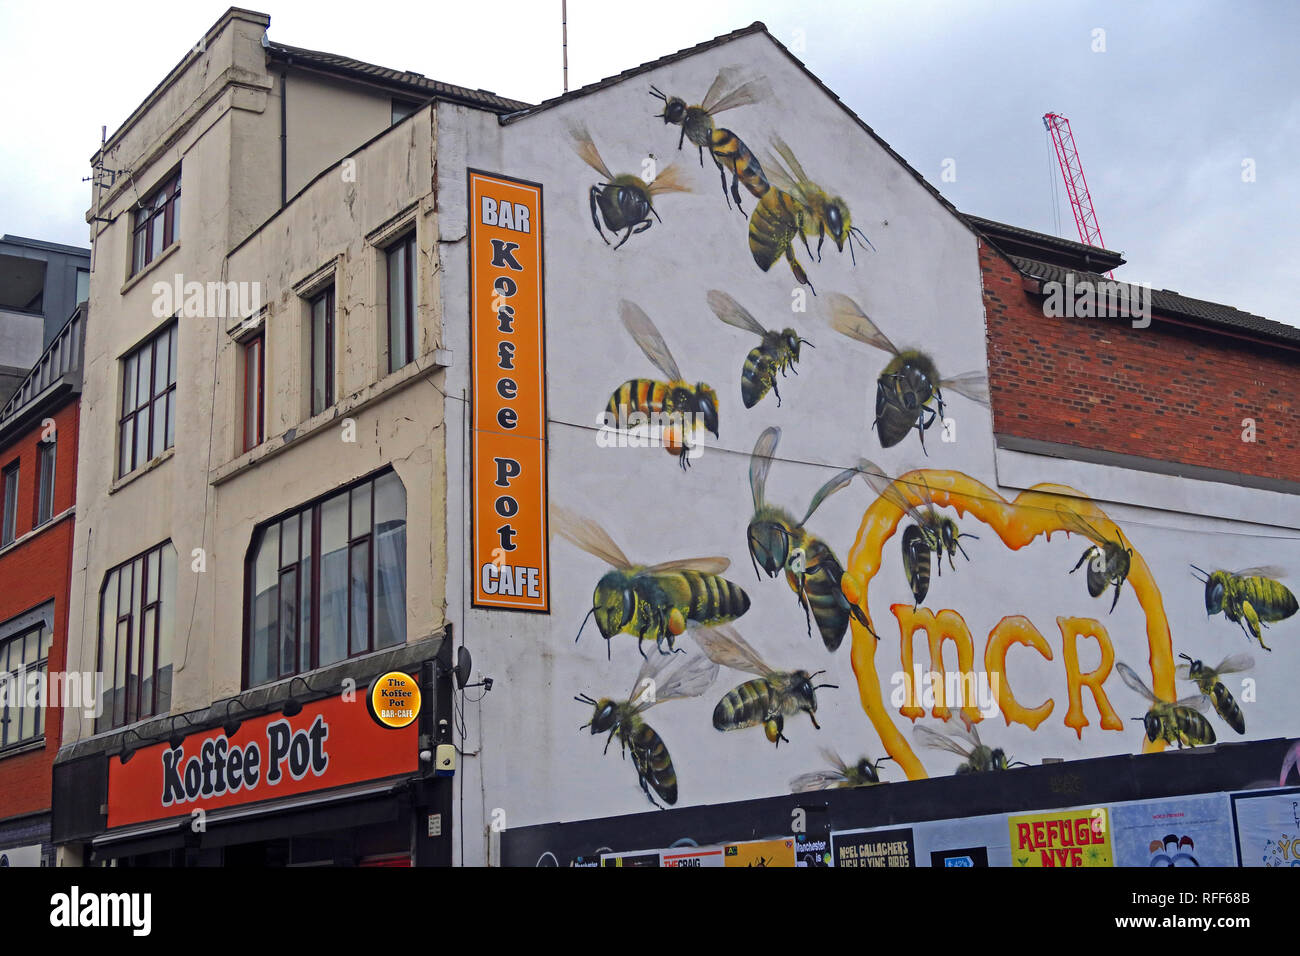 The Koffee Pot cafe,Oldham Street, 22 worker bees representing the 22 people killed, in the Manc Arena bombing,by graffiti artist Russell Meeham,Qubek - Stock Image